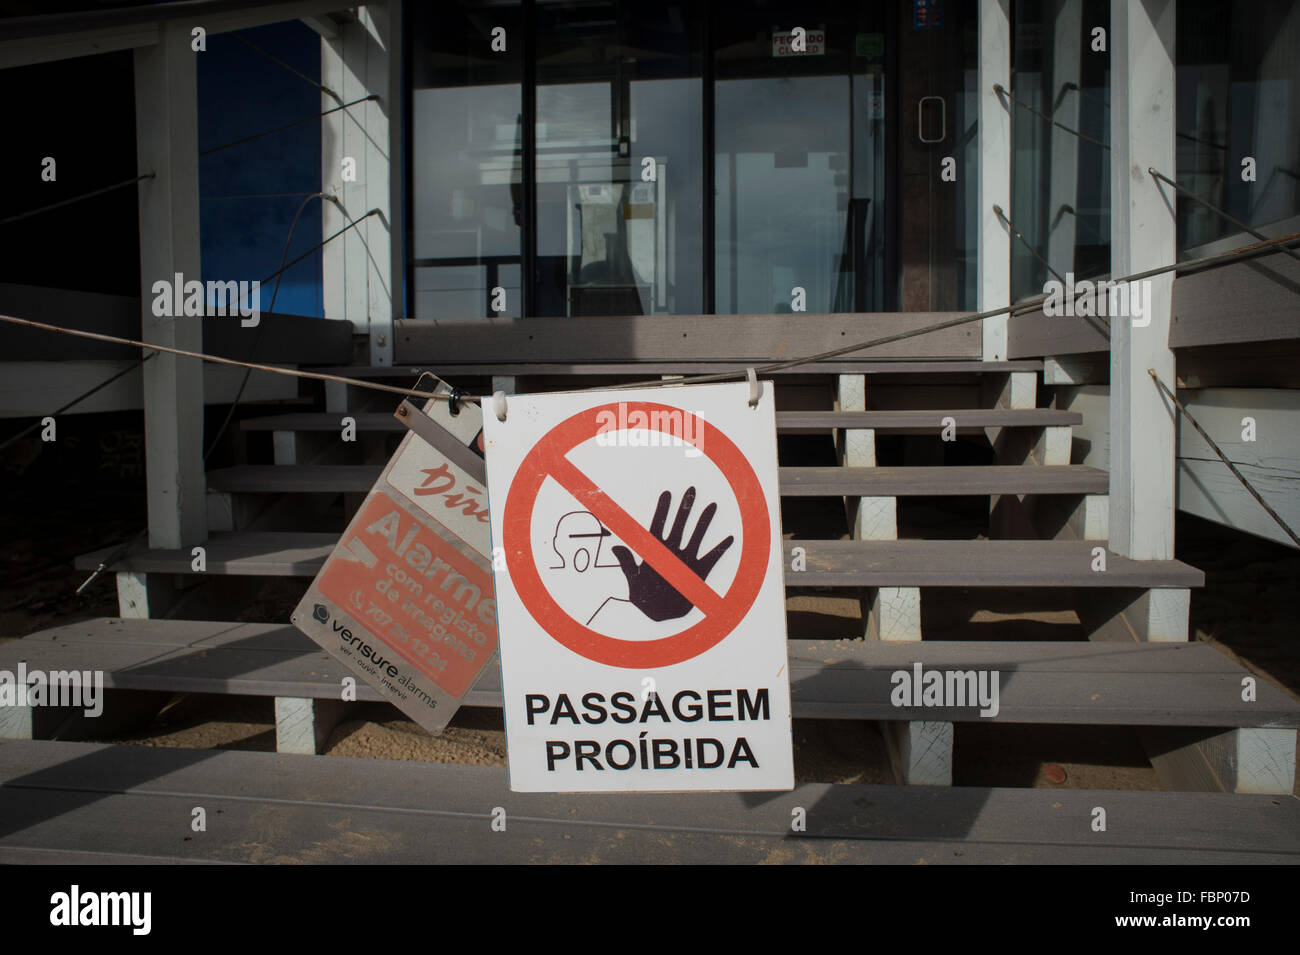 No entry sign in Portugal - Stock Image